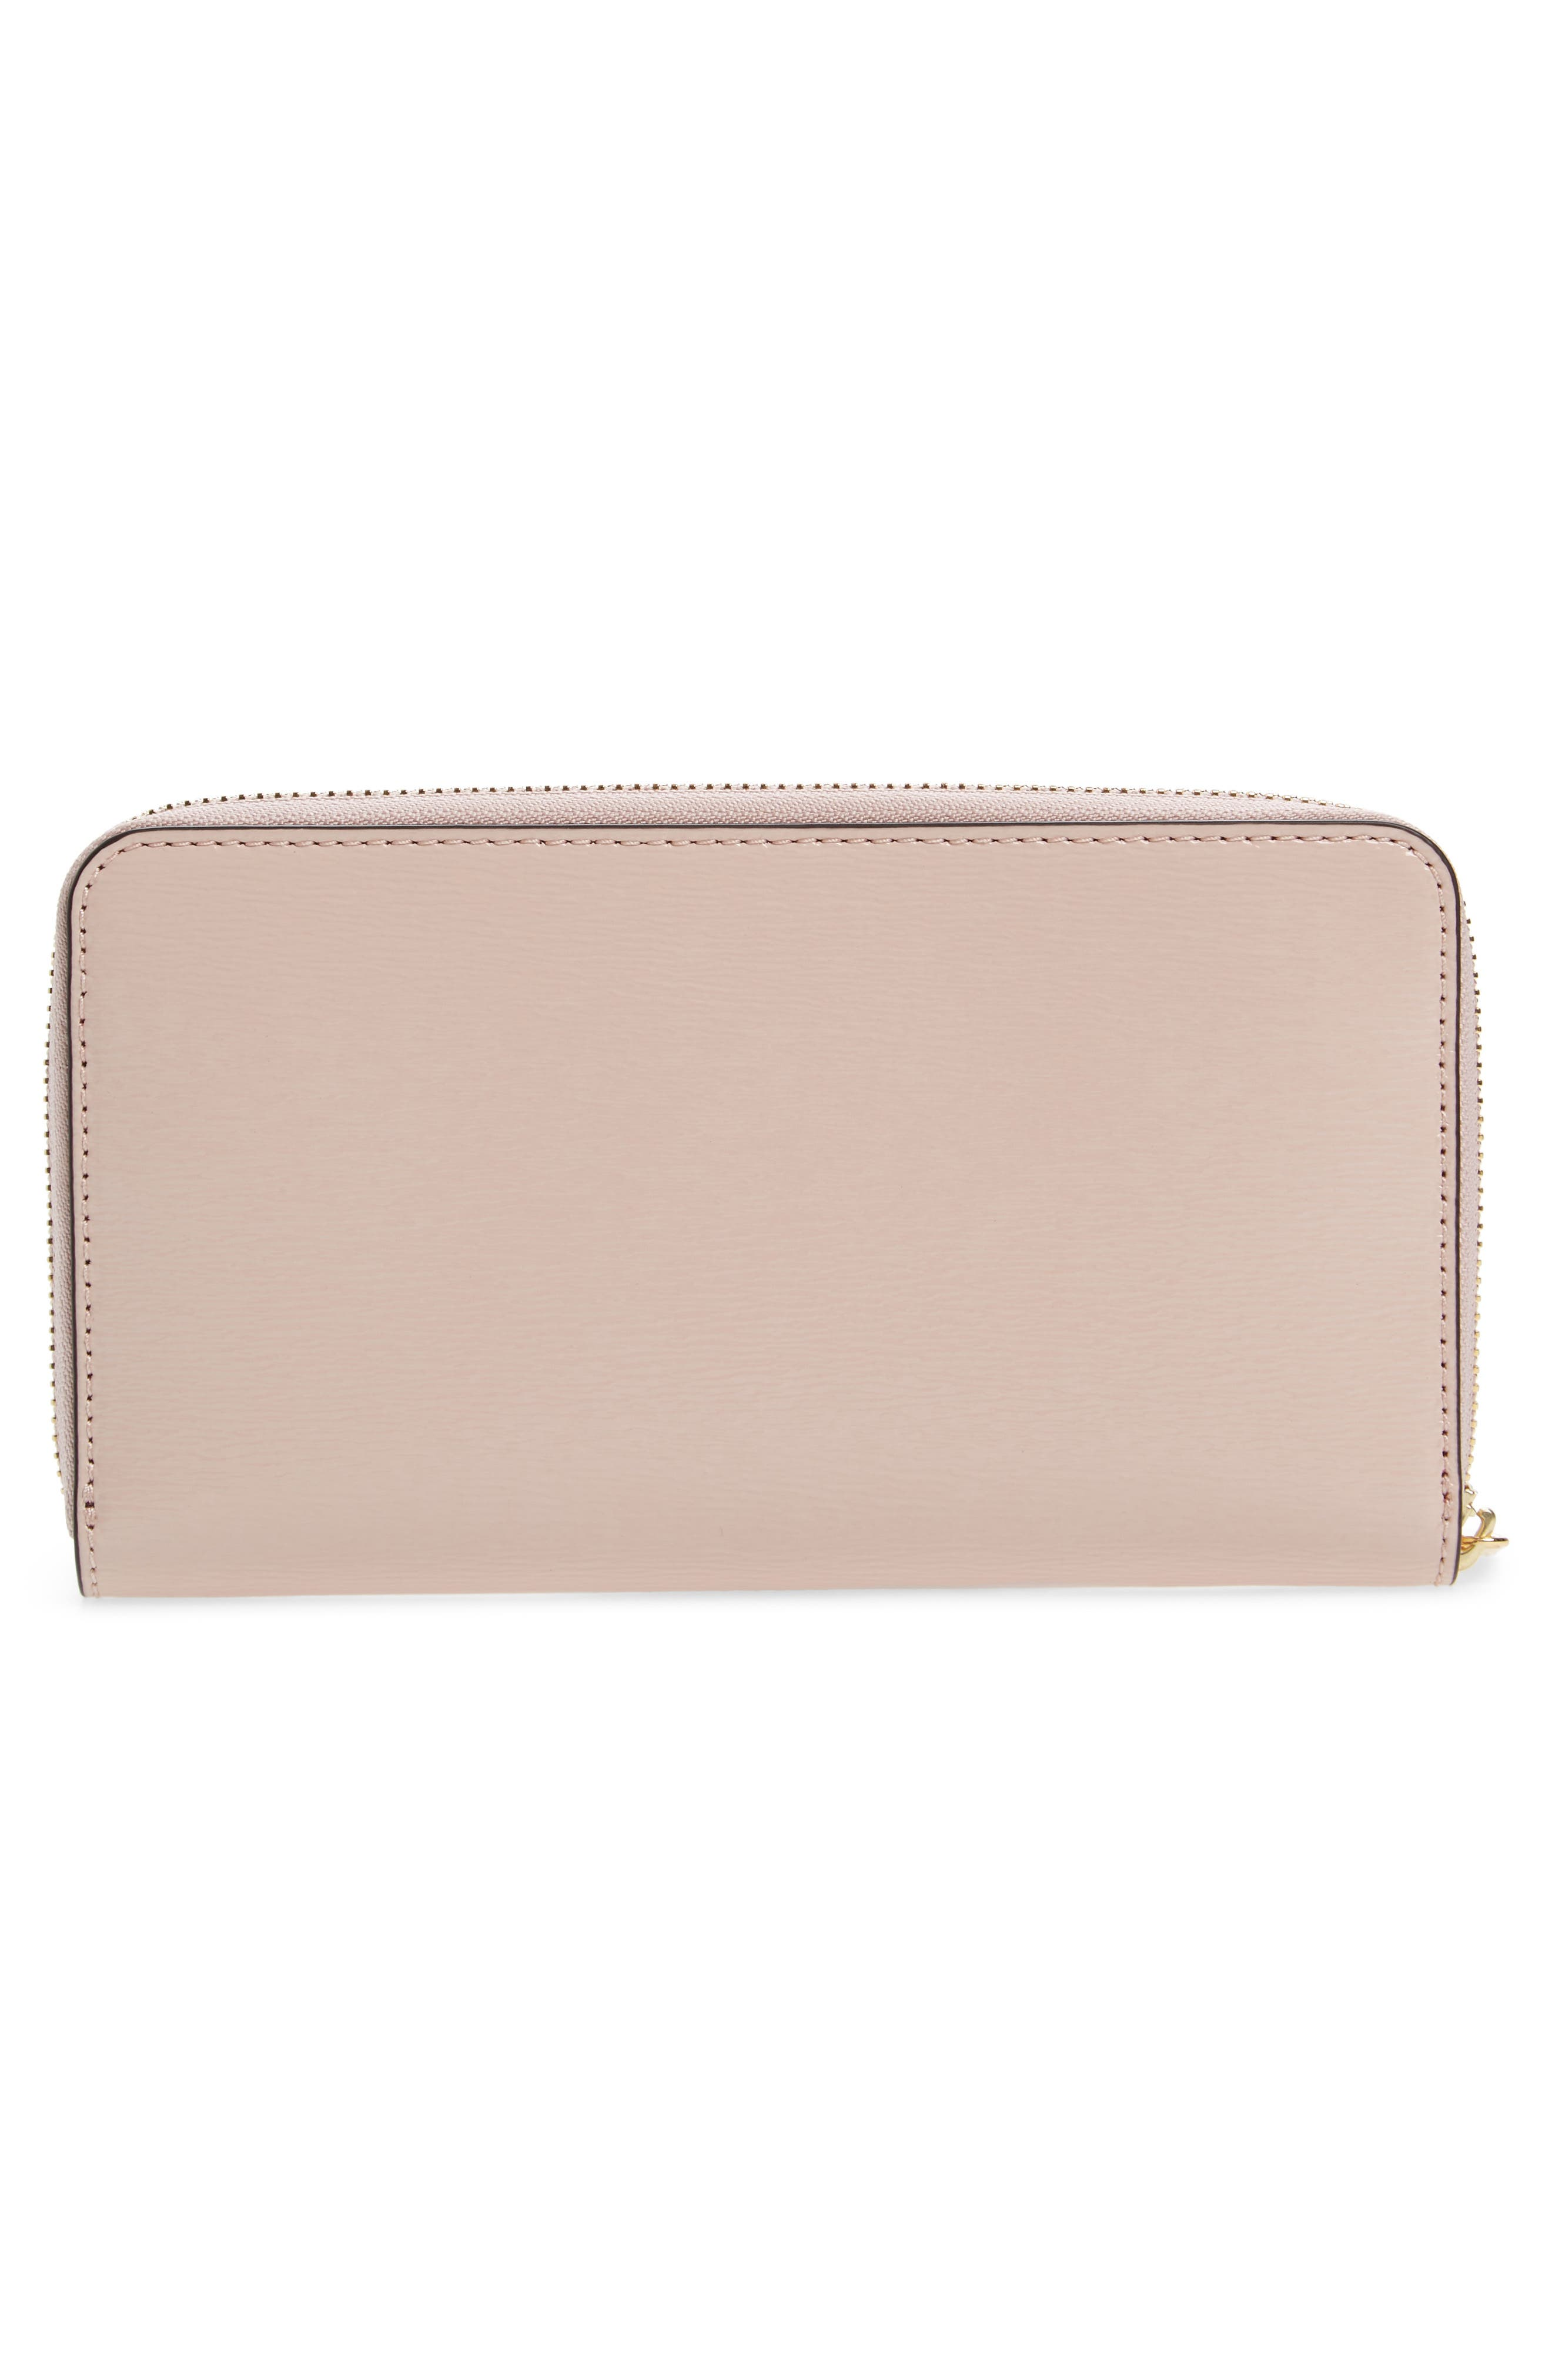 Robinson Patent Leather Continental Wallet,                             Alternate thumbnail 2, color,                             Shell Pink